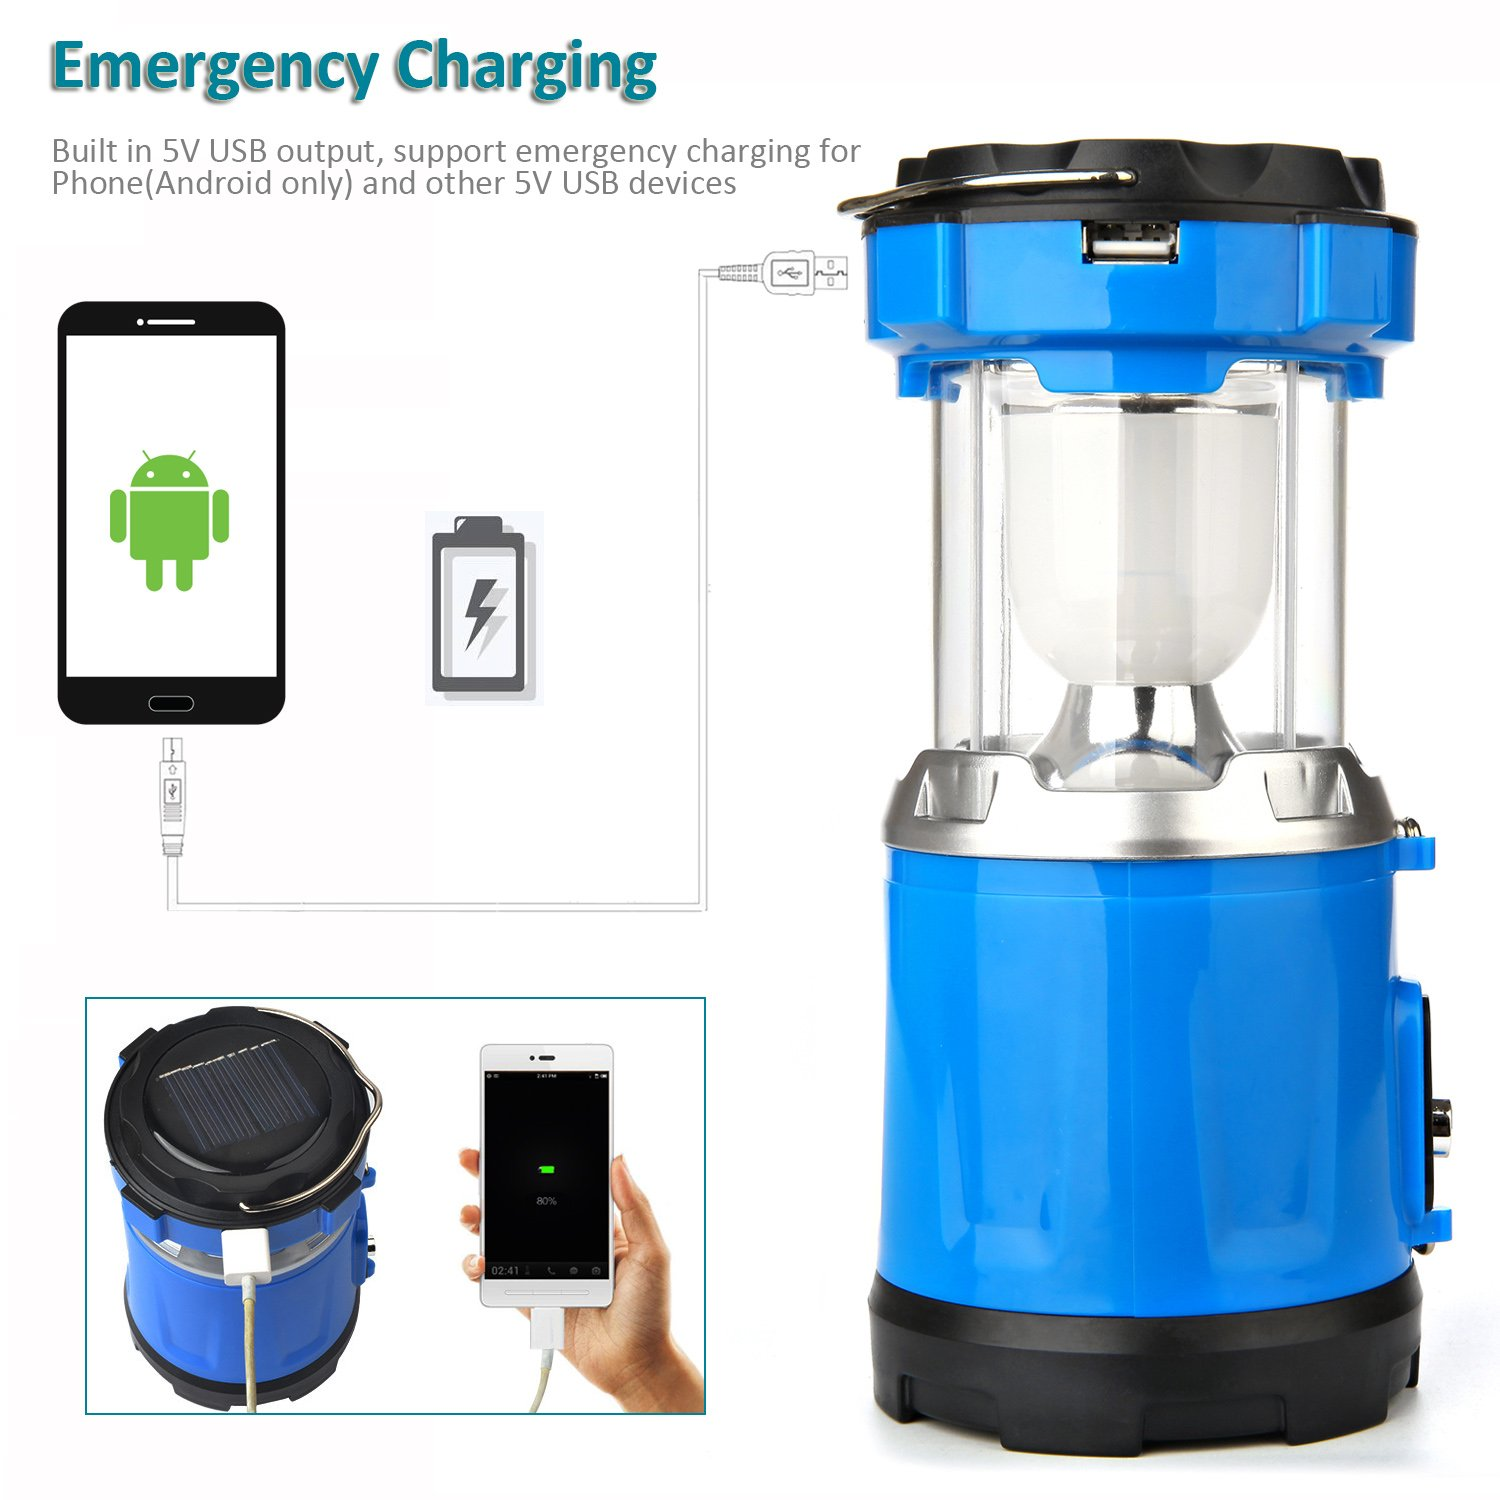 Camping Lantern Light, IRuiYinGo Rechargeable Lamp Solar LED Flashlight with Hanging Blue Color, Great light for Camping/ Hiking/ Backpacking...Outdoor Activities by IRuiYinGo (Image #5)